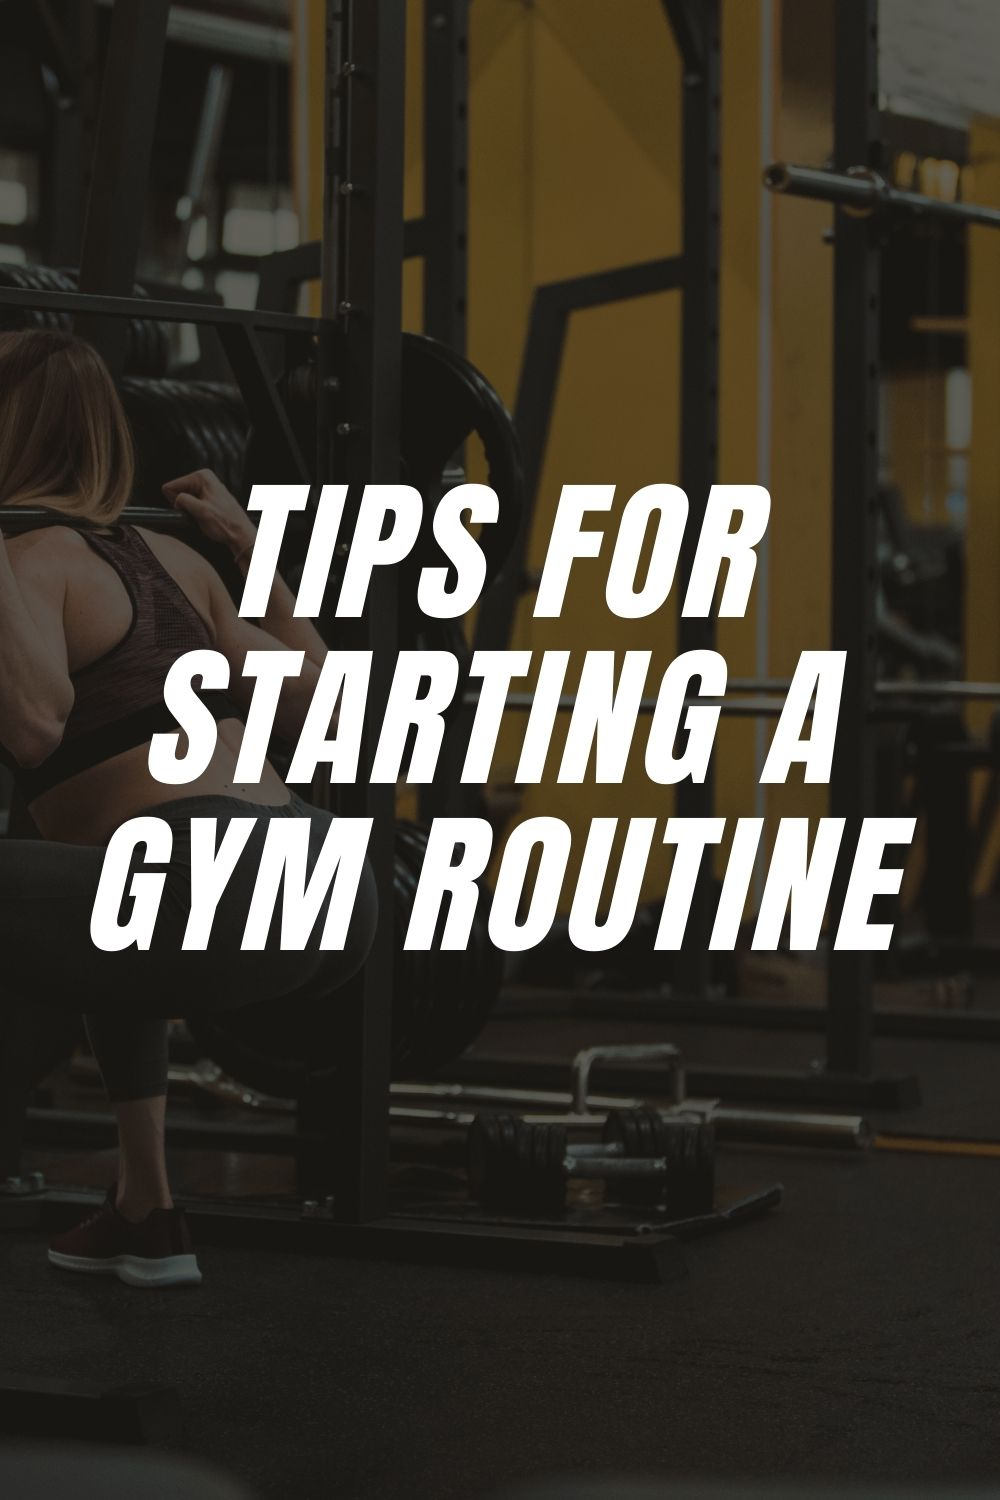 Tips For Starting a Gym Routine